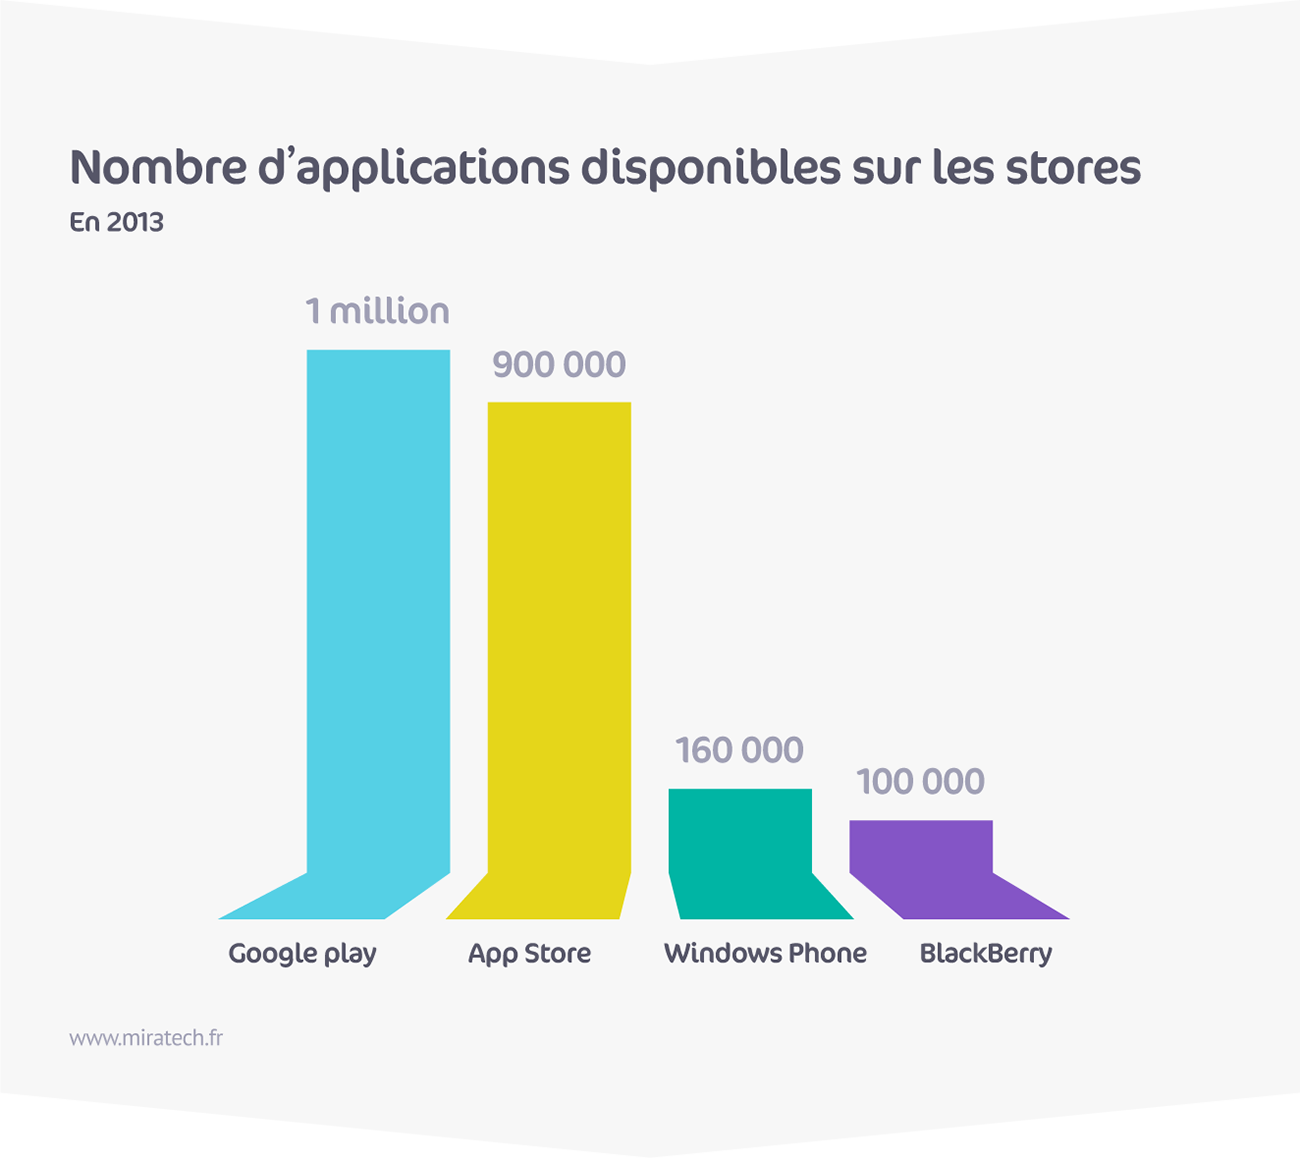 Nombre d'applications disponibles sur les stores